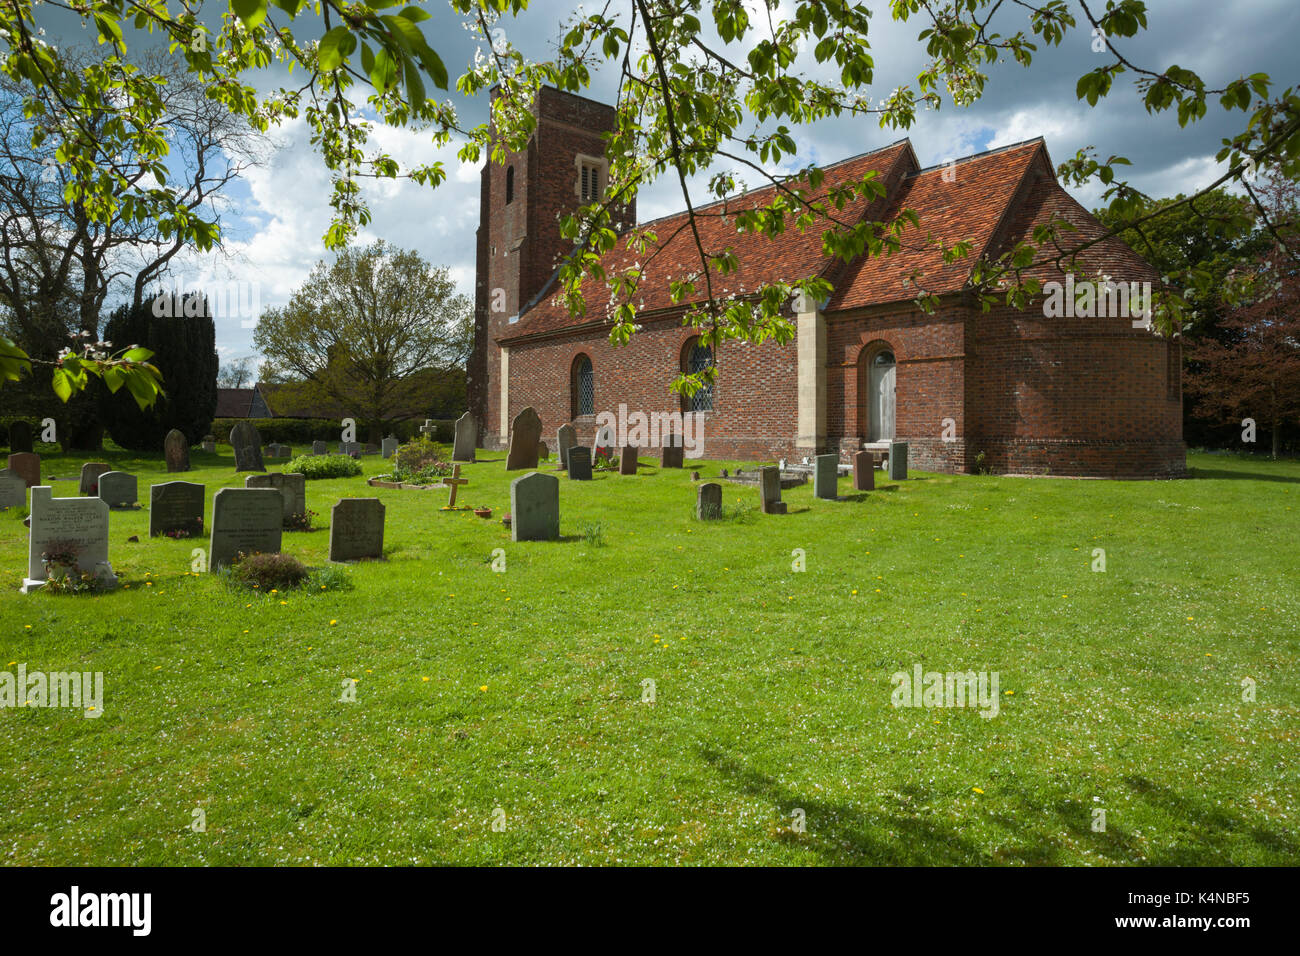 St Mary Magdalene church. The tower is 16th Century and built of brick, the rest of the church is mainly Victorian, Whipsnade, Bedfordshire, England. - Stock Image